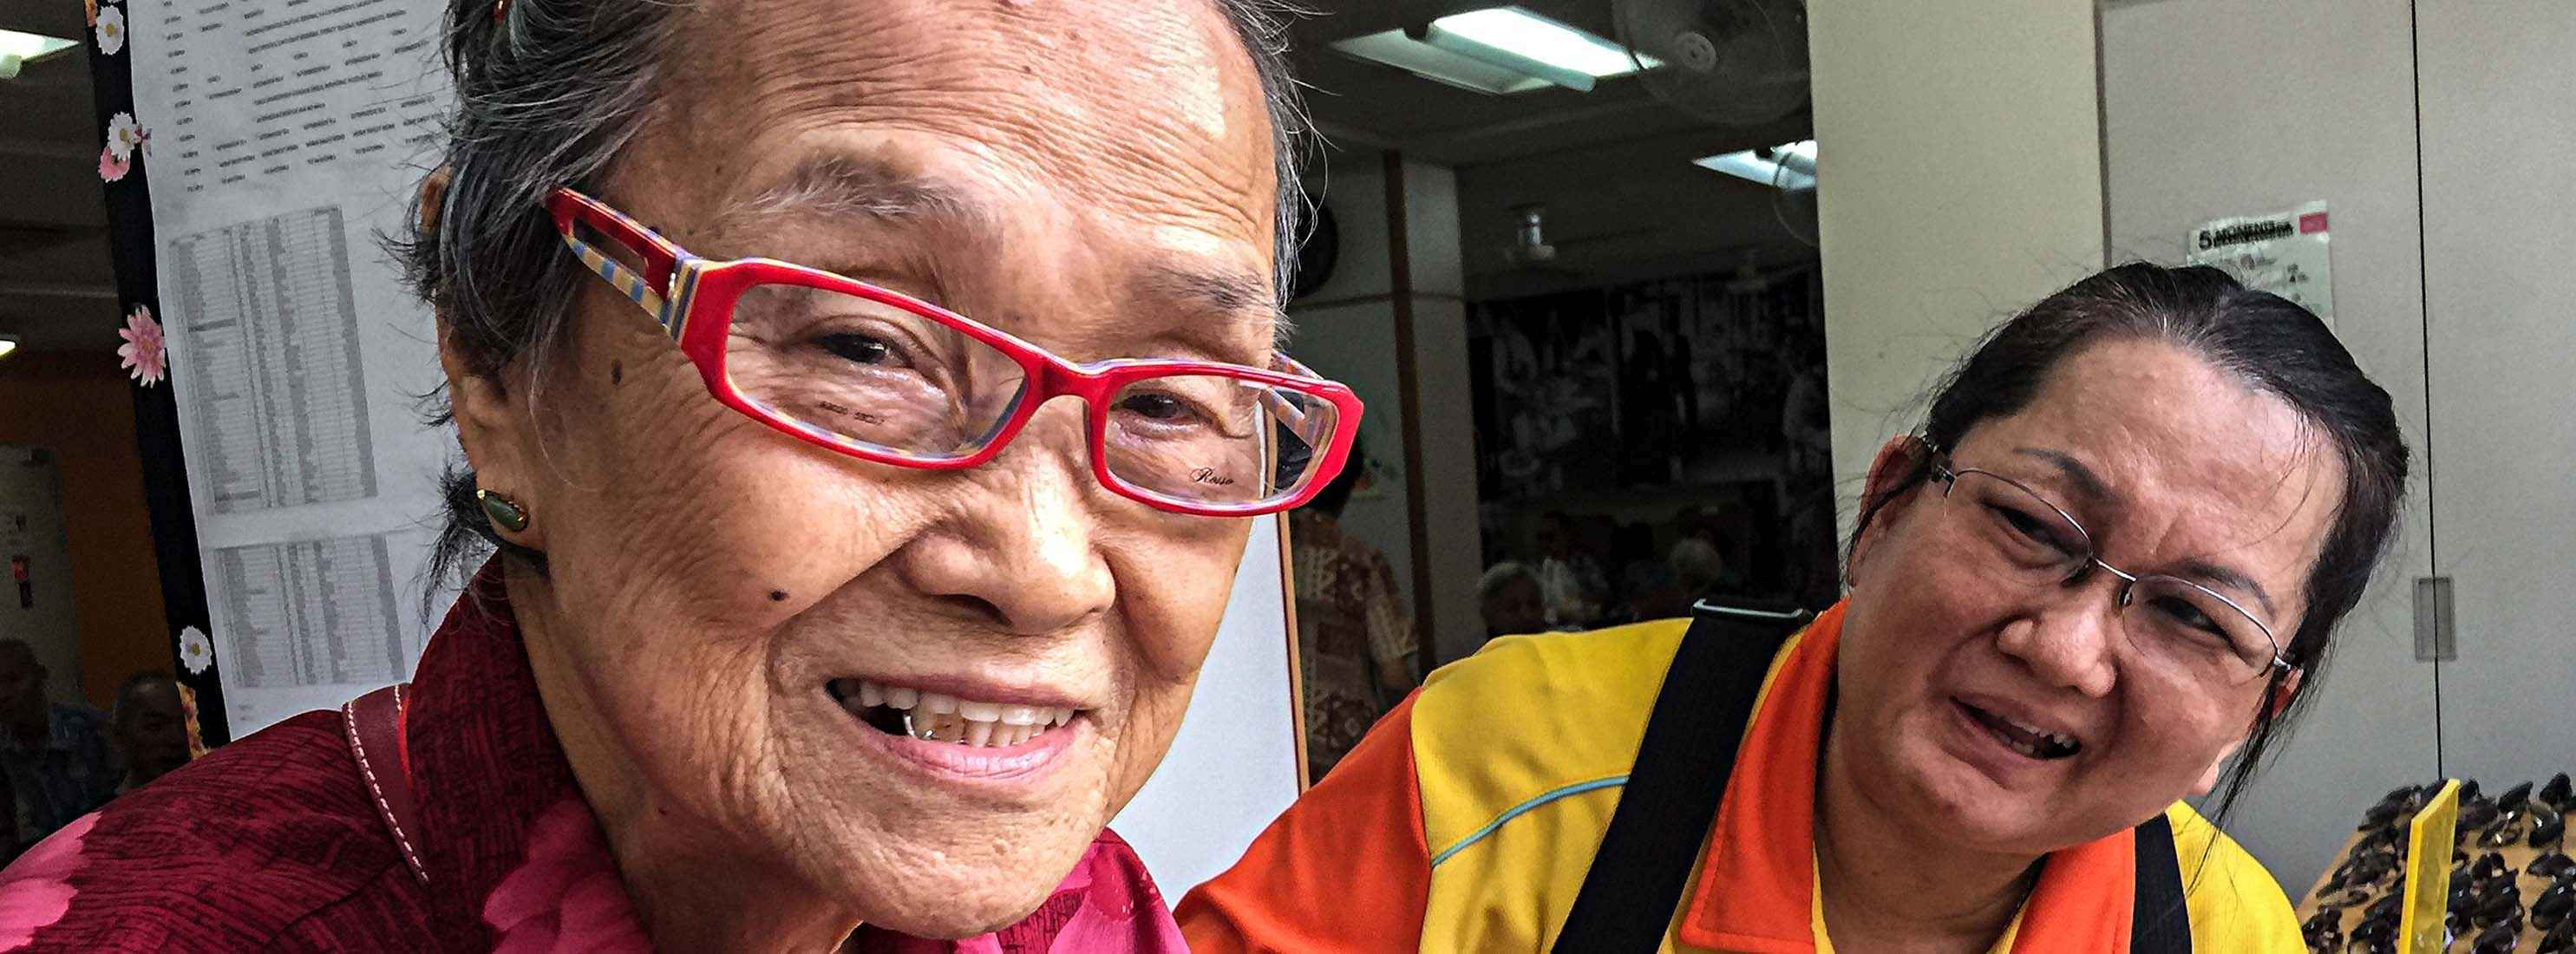 spectacles charity in Singapore, donation to needy elderly